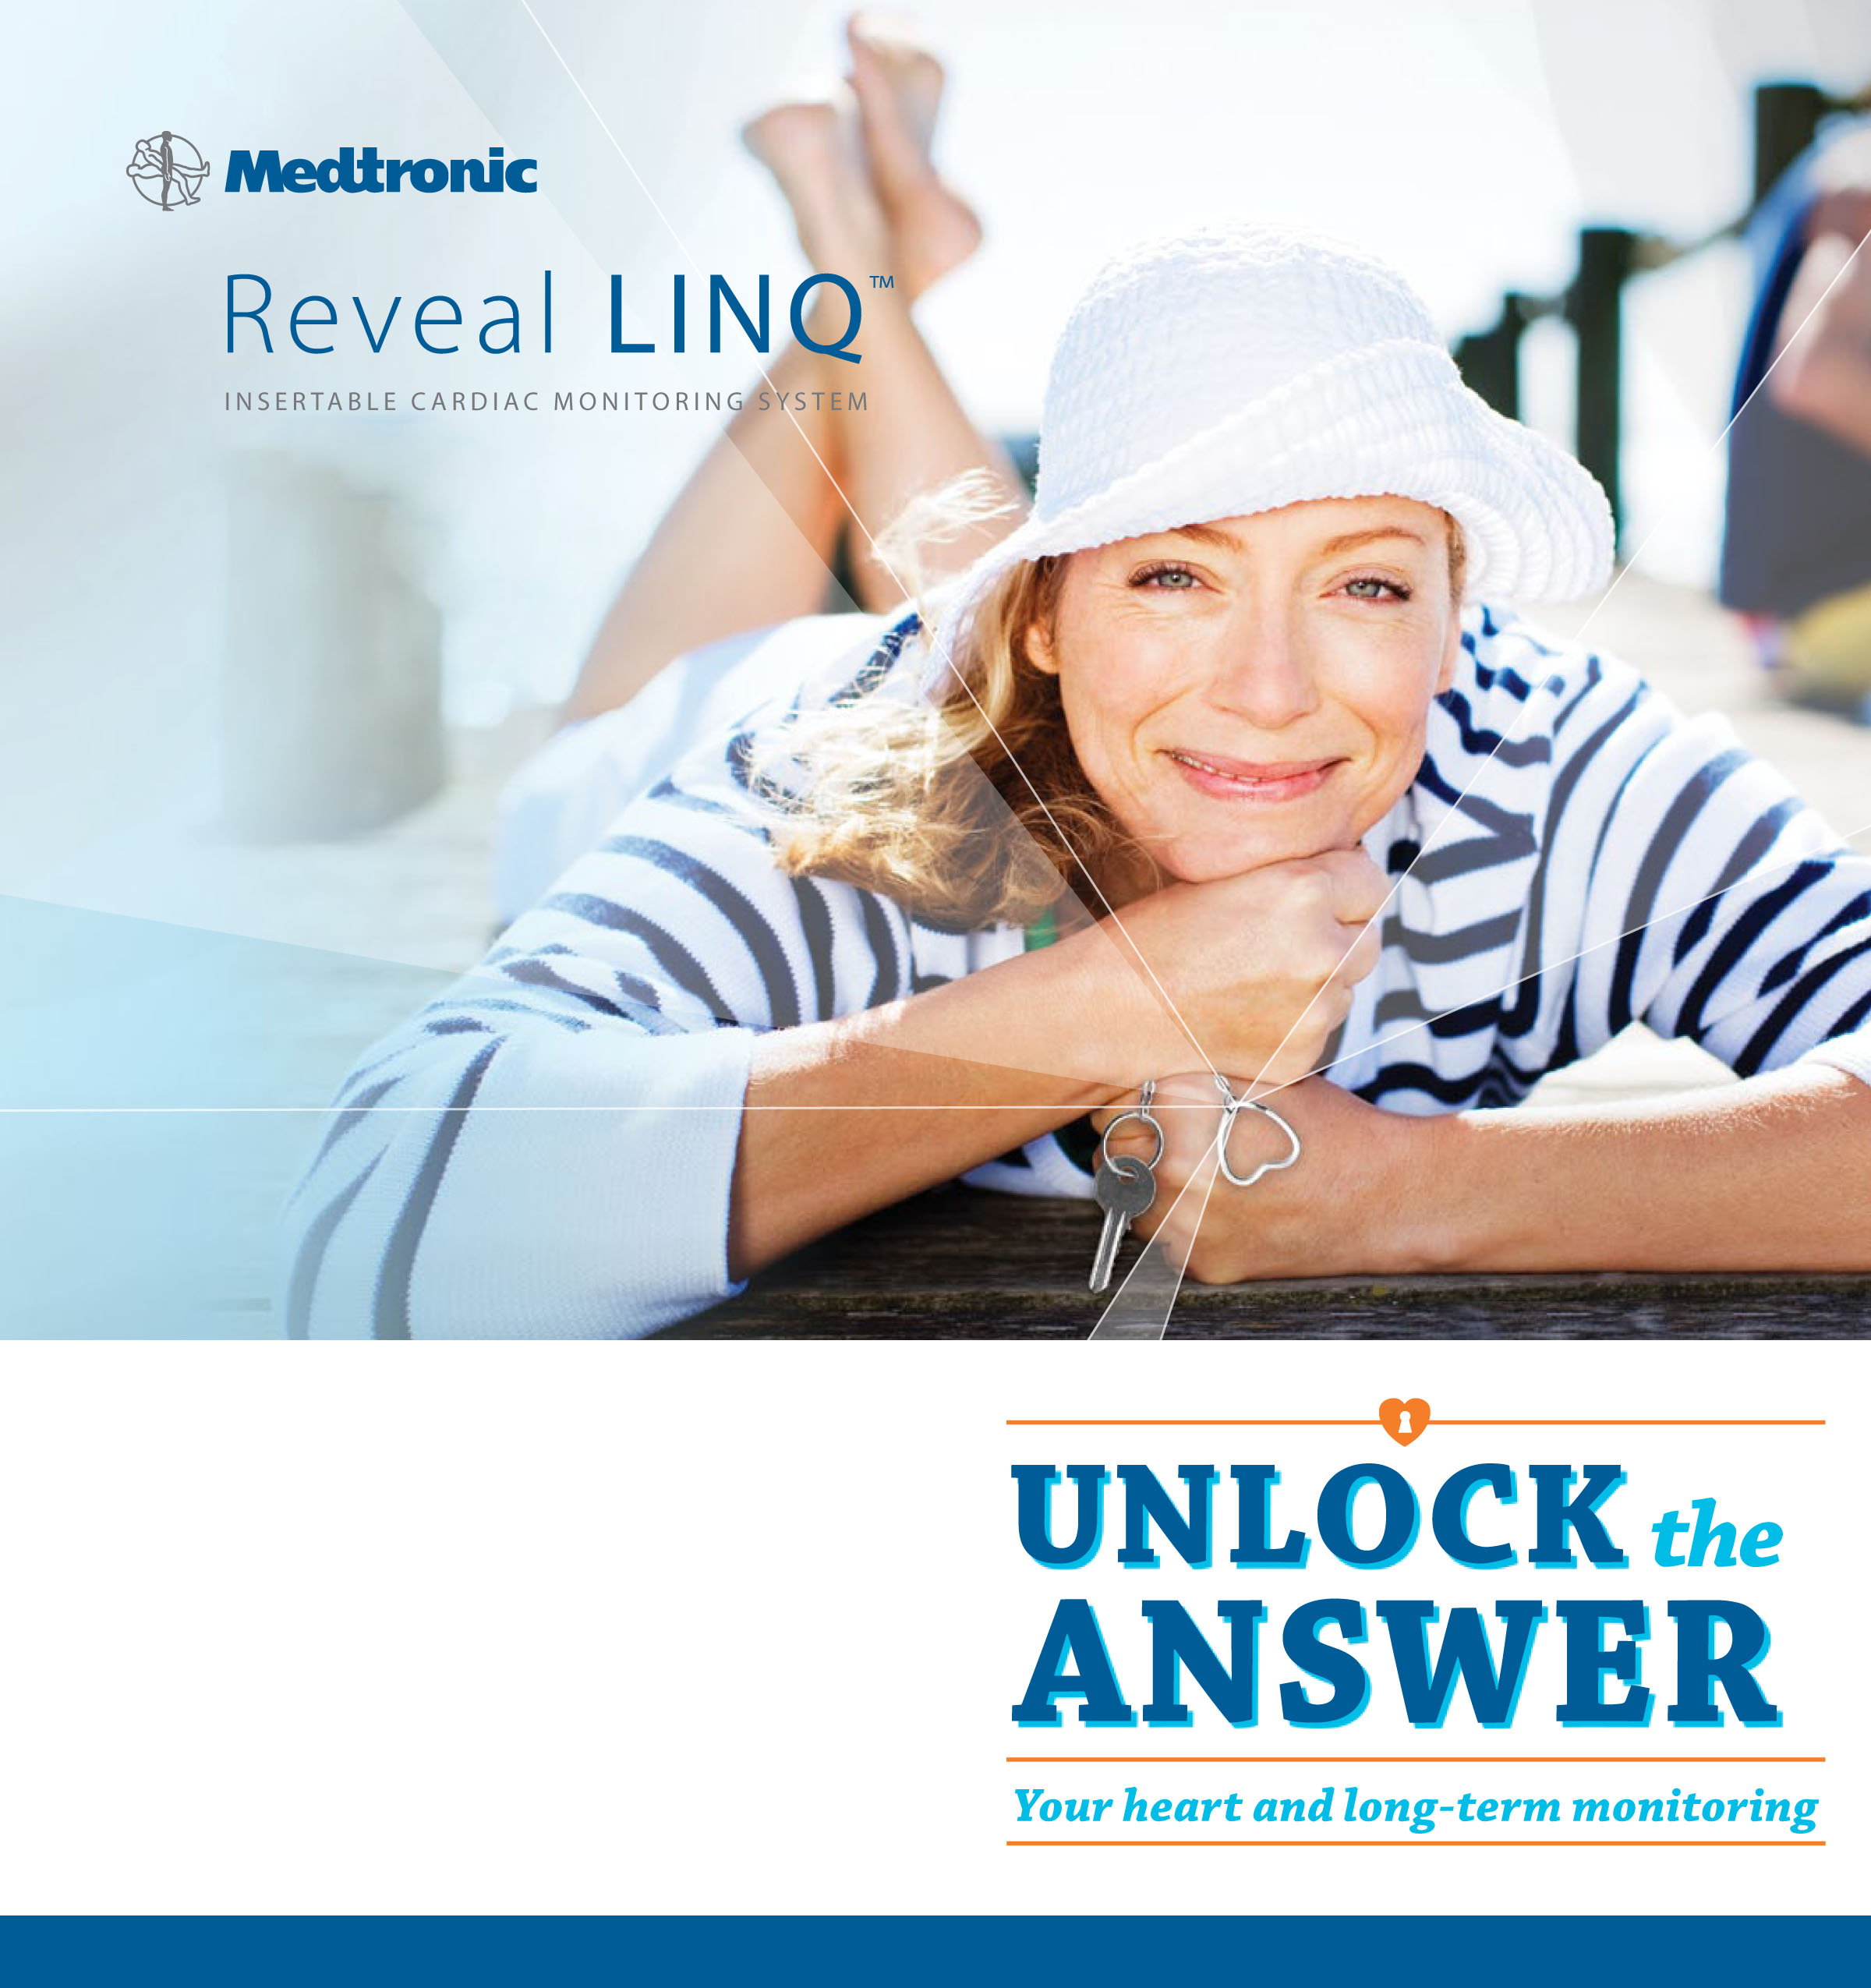 Reveal LINQ on CareLink Network Best Practices | Medtronic